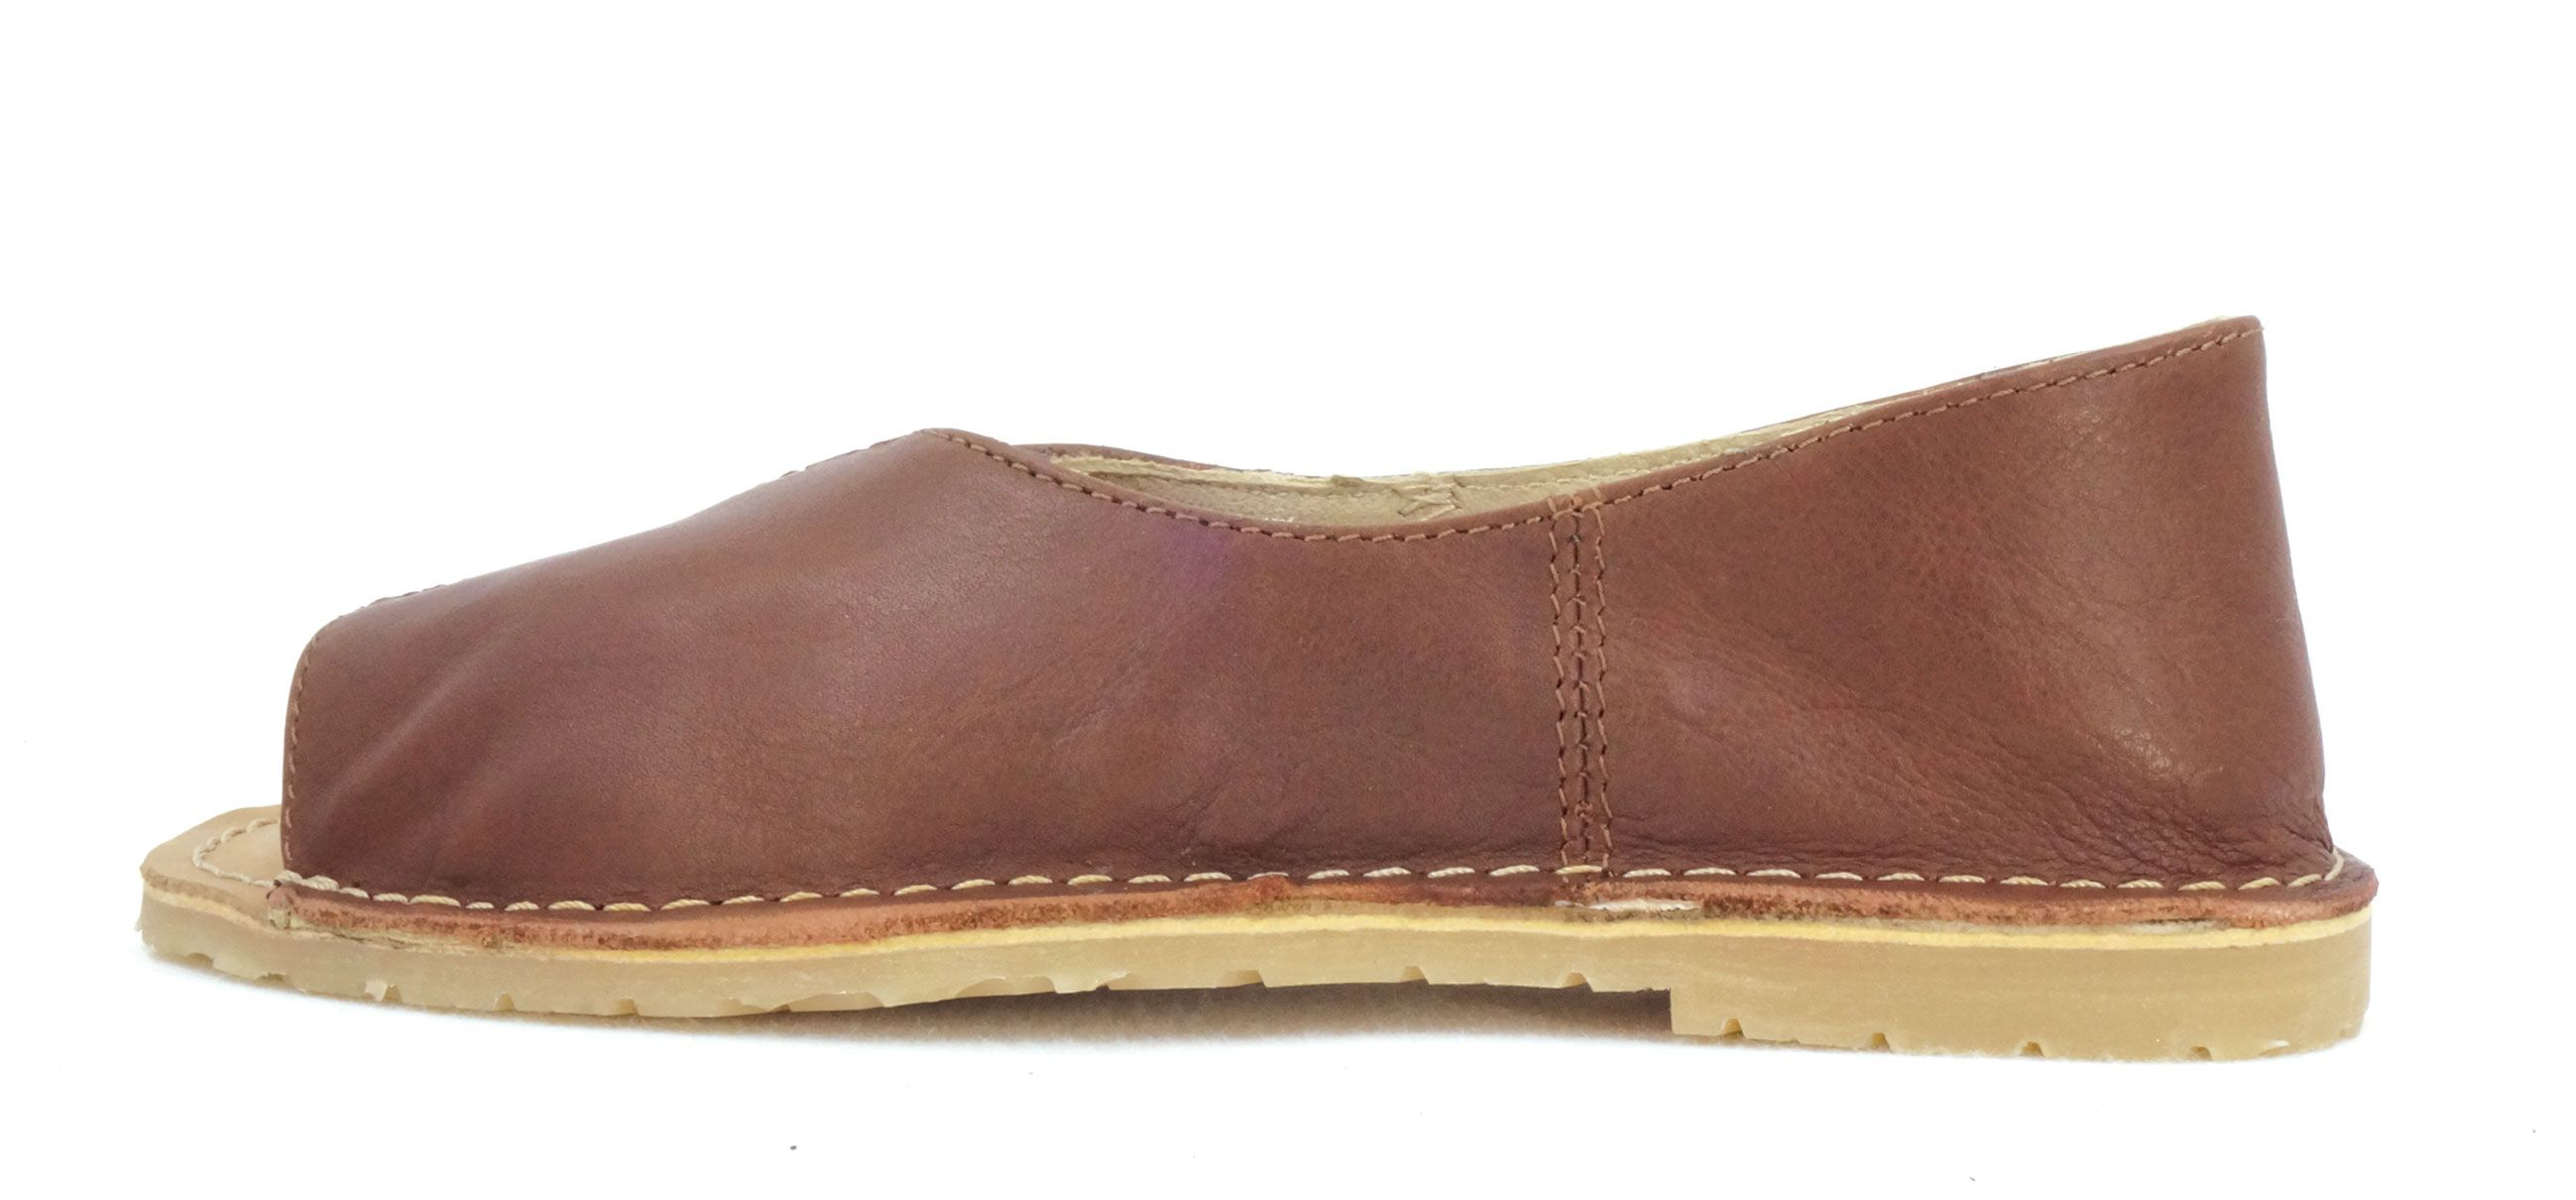 Freestyle Cindy Onspan Brown With Peep Toe Handcrafted Genuine Leather Shoes Genuine Leather Shoes Leather Shoes Woman Handcrafted Shoes